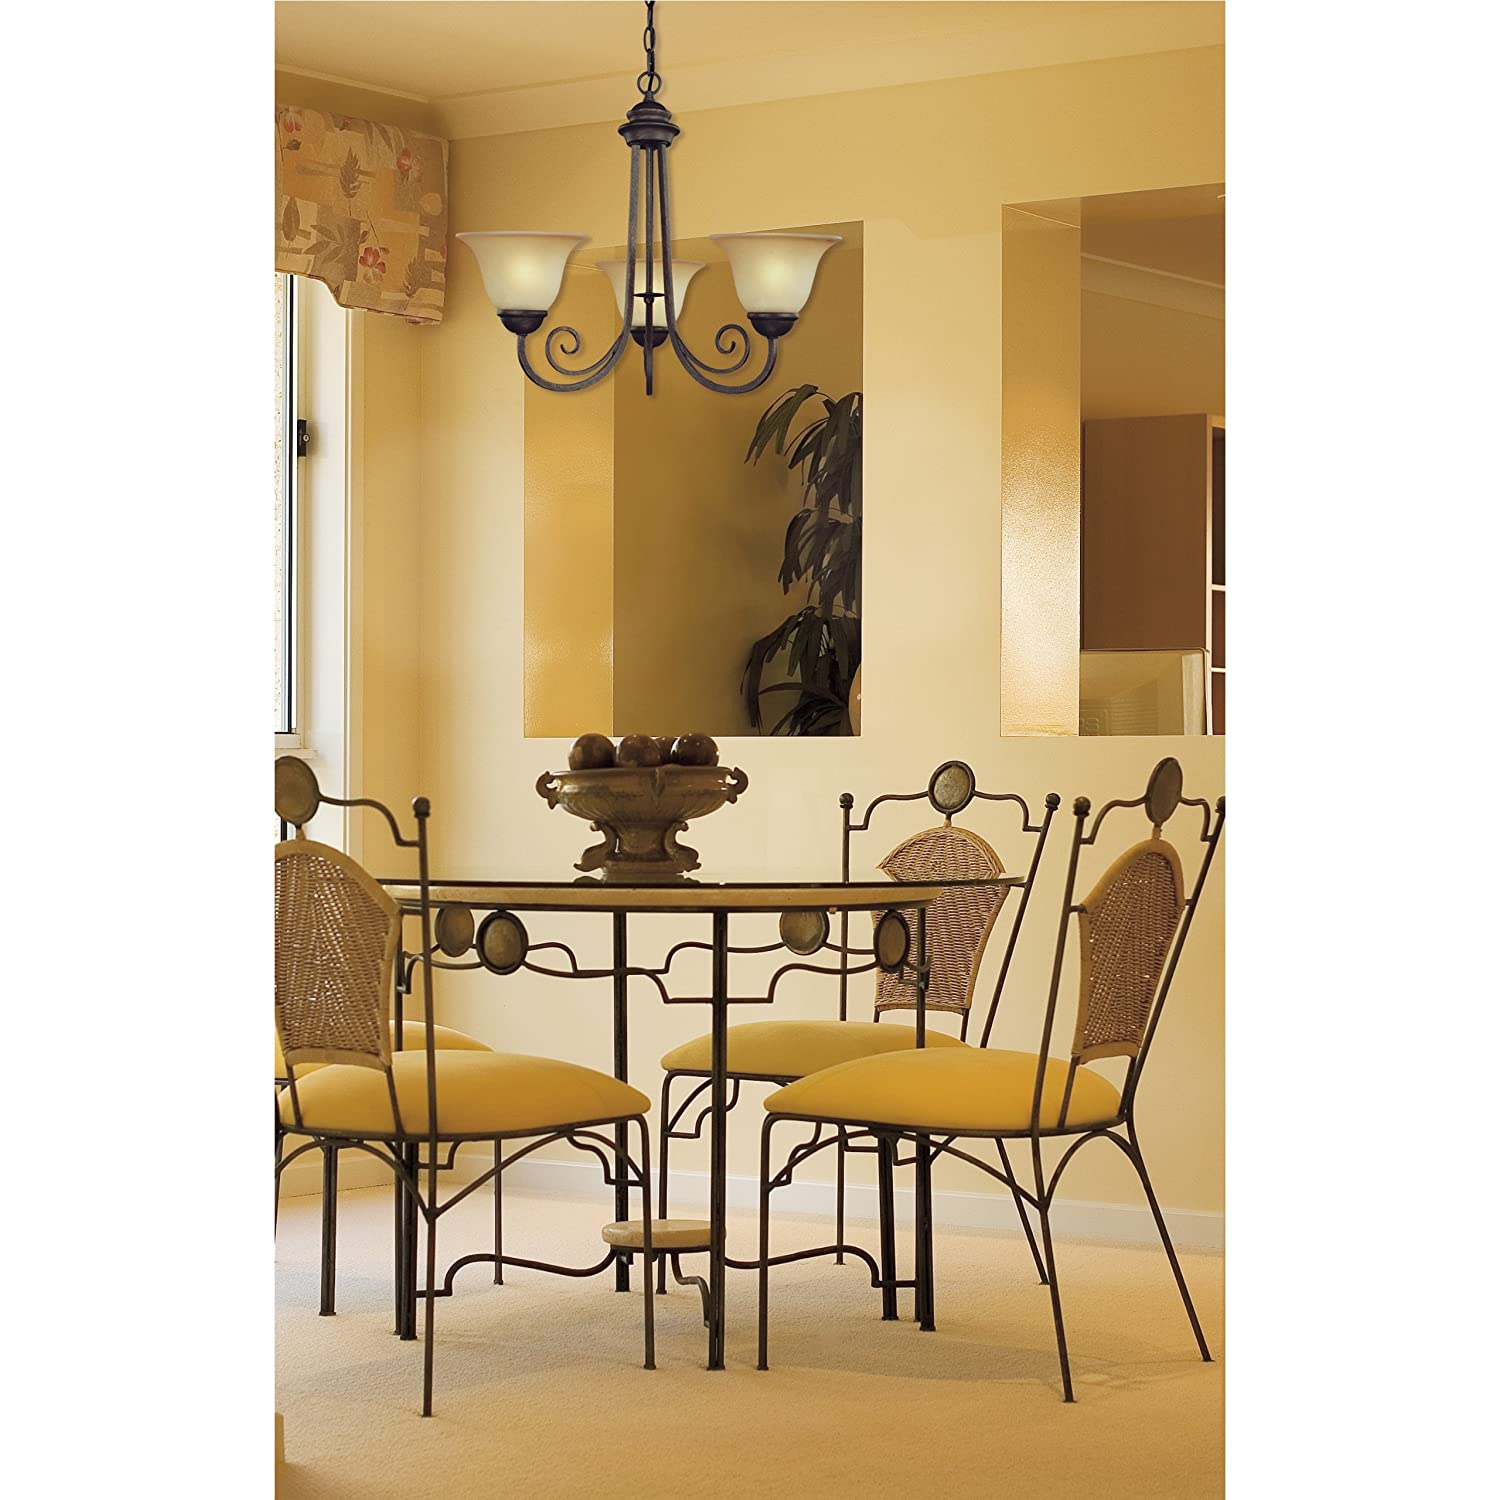 Westinghouse 6658700 Three Light Interior Chandelier Ebony Bronze Finish with Aged Alabaster Glass